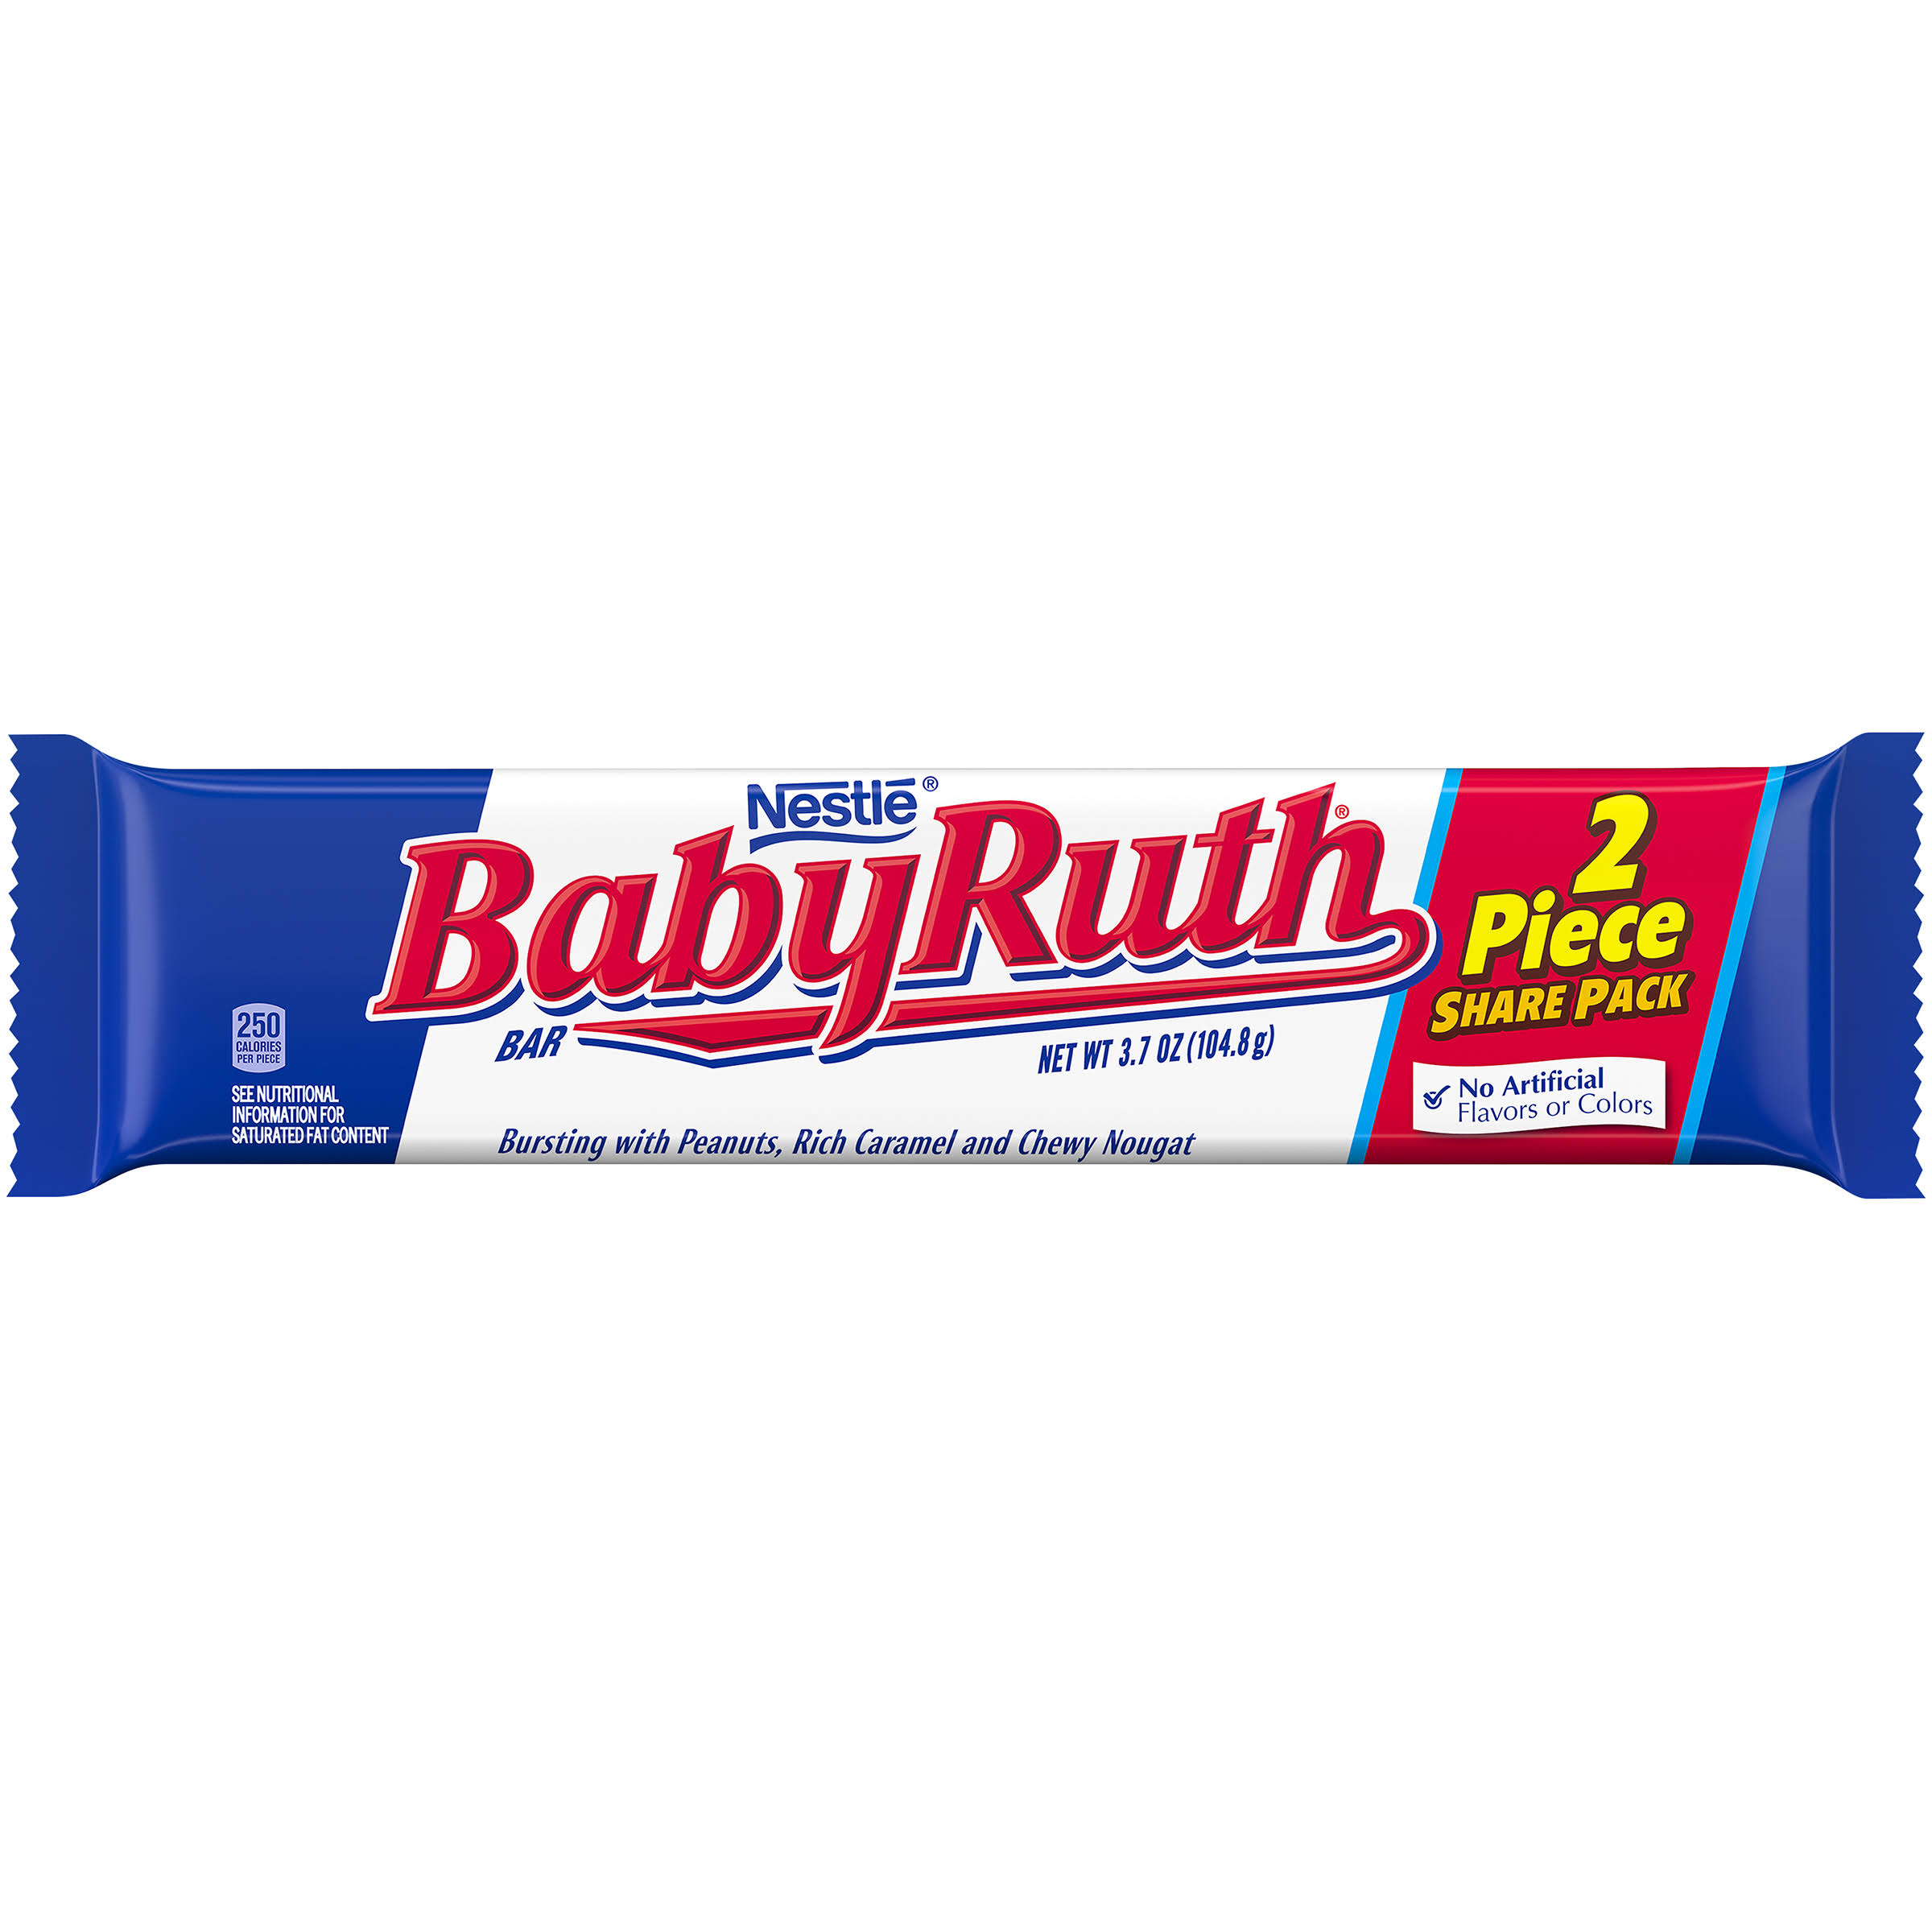 Nestle Baby Ruth Candy Bar - King Size, 3.7oz